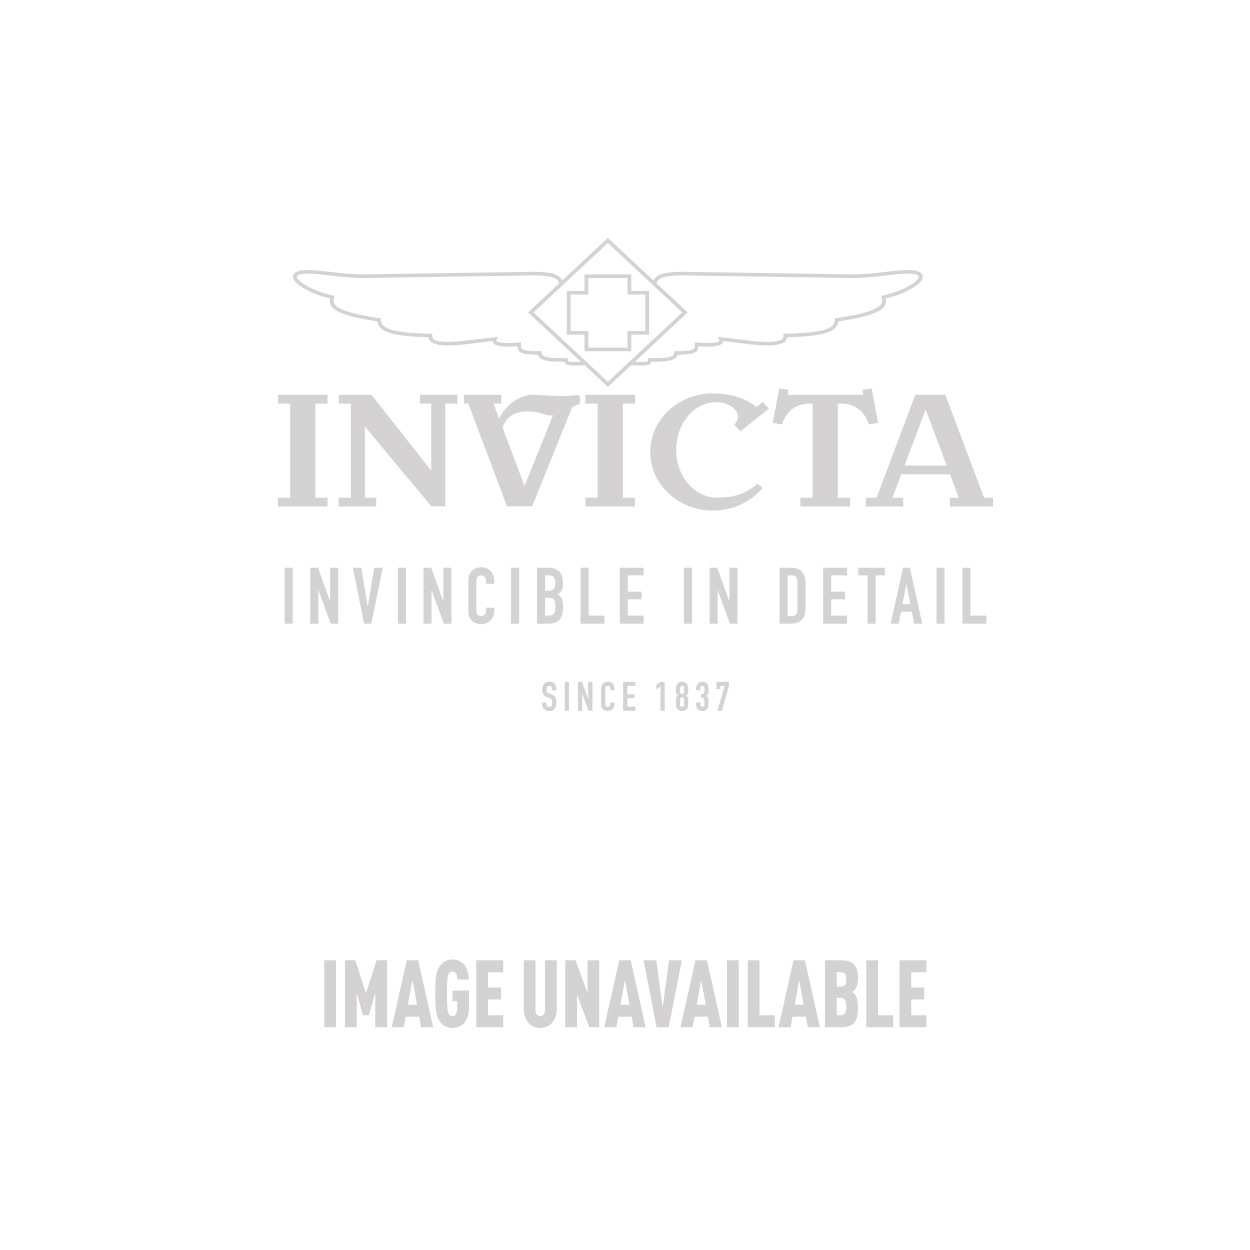 Invicta Reserve Swiss Made Quartz Watch - Stainless Steel case Stainless Steel band - Model 14208